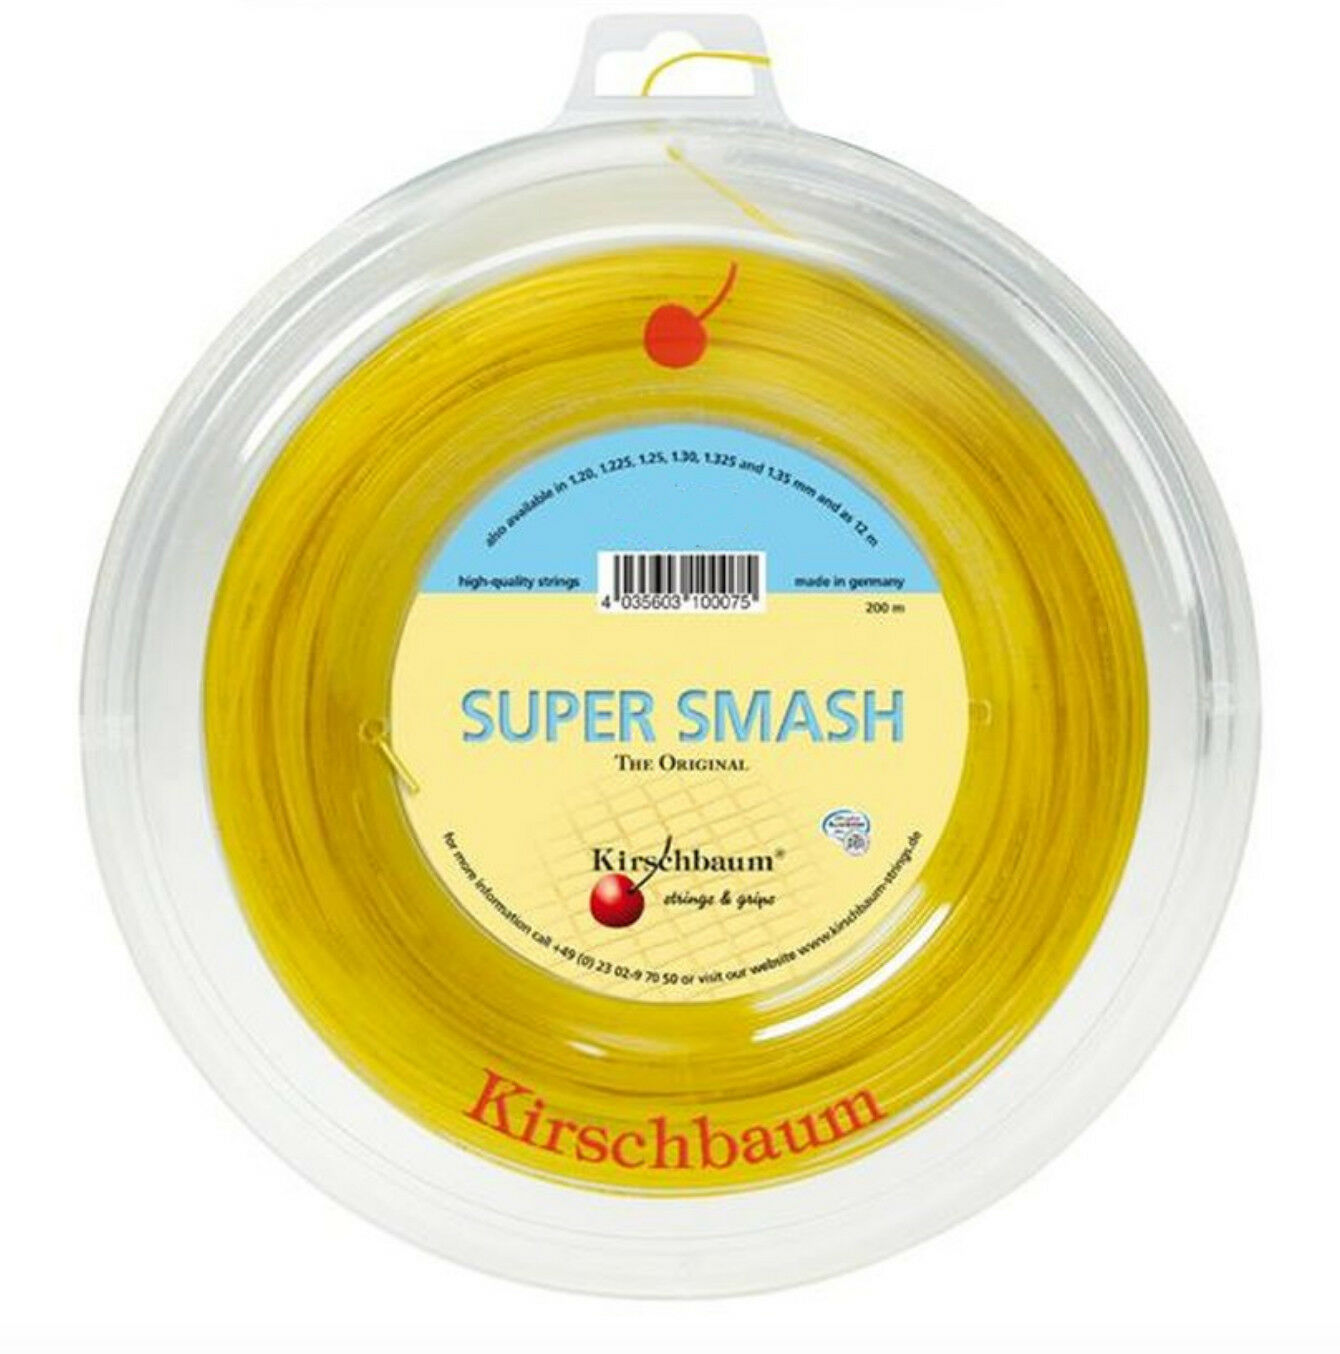 ( m) Kirschbaum Super Smash 1,275 mm 200 m Tennis Saiten Strings